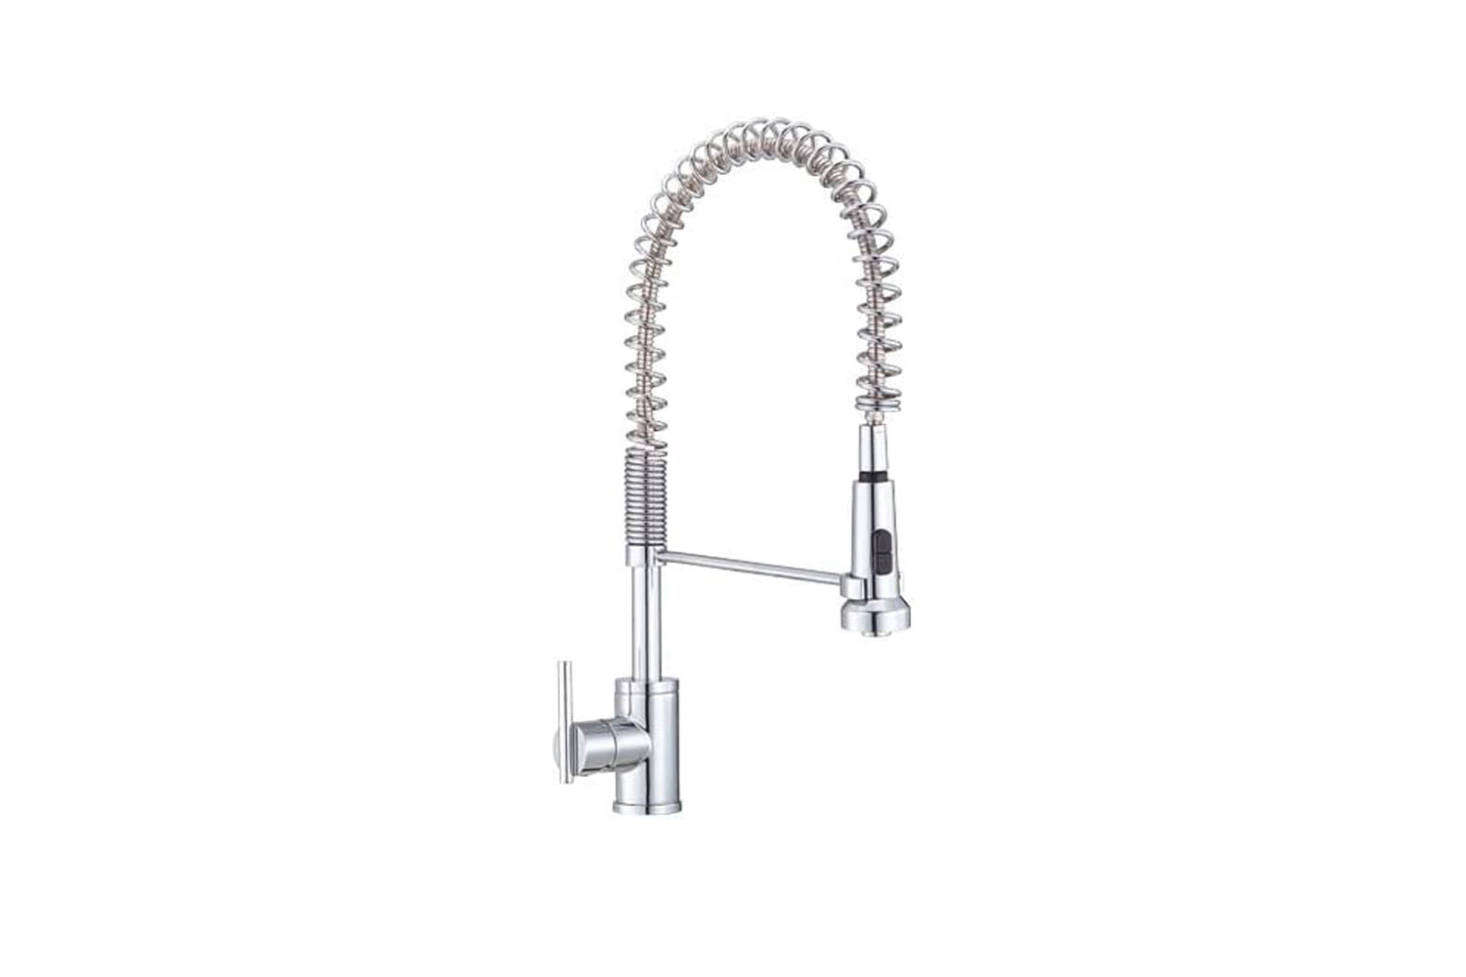 The Danze Parma Single Handle Pre-Rinse Faucet (D4558) in Chrome is $